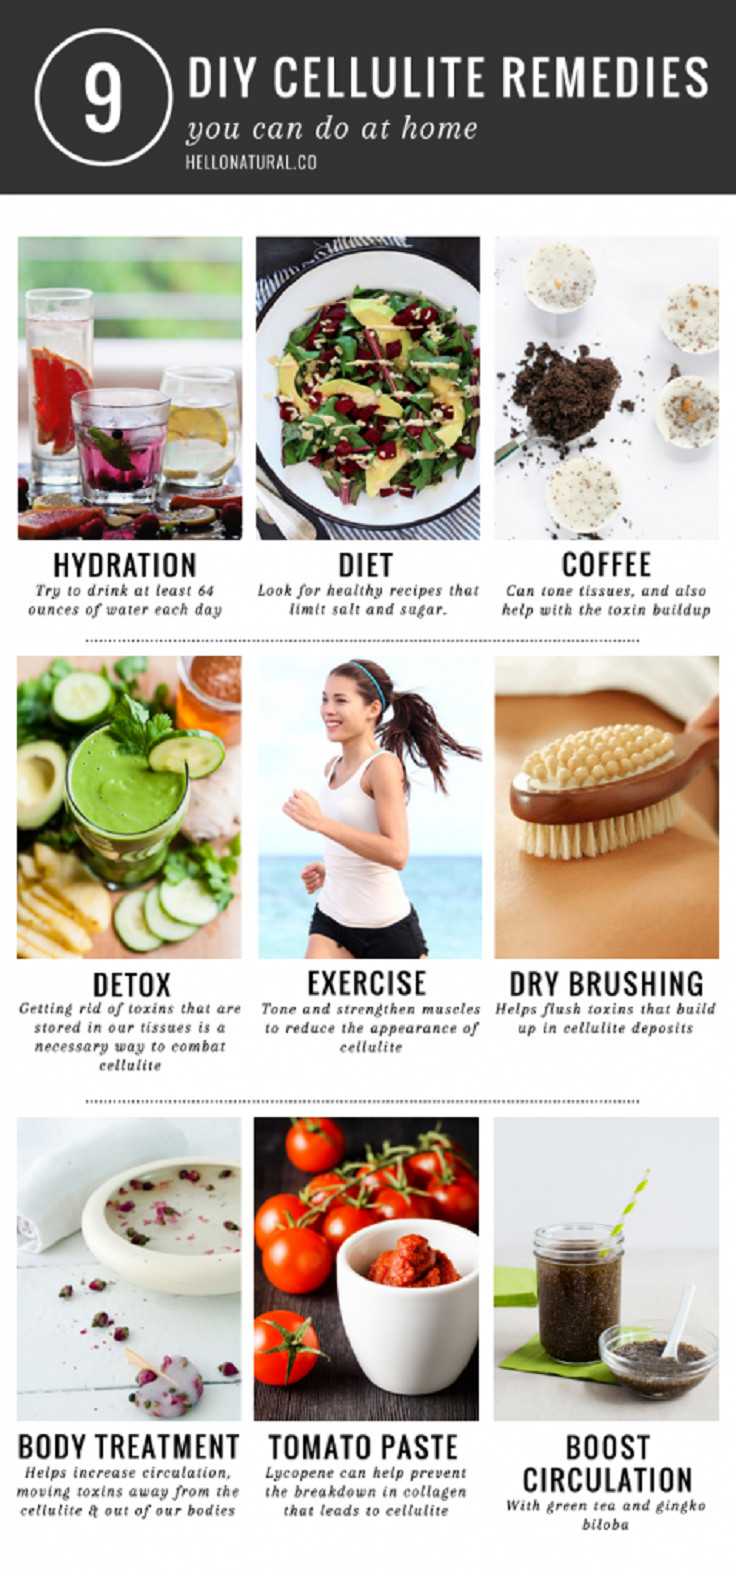 DIY Home Remedies  13 Homemade Cellulite Reme s Exercises and Juice Recipes